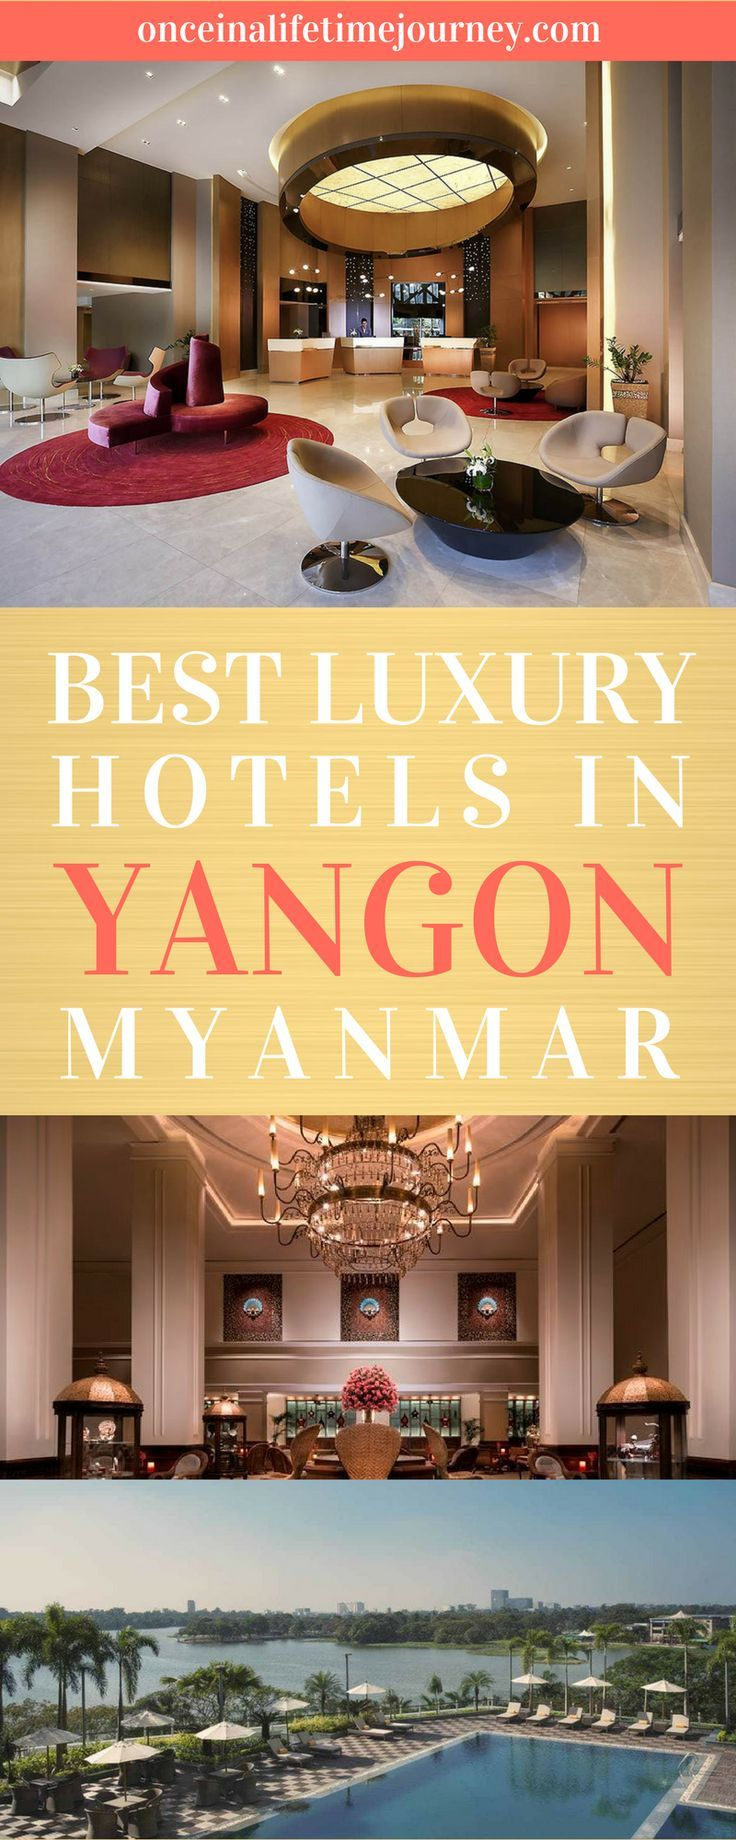 As Myanmar's main business center modernises and develops into a full-fledged Asian city, modern and luxury hotels in Yangon are springing up. Before you set off to more remote and harder to reach destinations, spend some time in the best luxury hotels in Yangon and set a base from where to explore the city's chaos mixed with modernity. Click through to see the best luxury hotels in Yangon, Myanmar. | Once in a Lifetime Journey #myanmar #luxuryhotels #yangon #luxurytravel